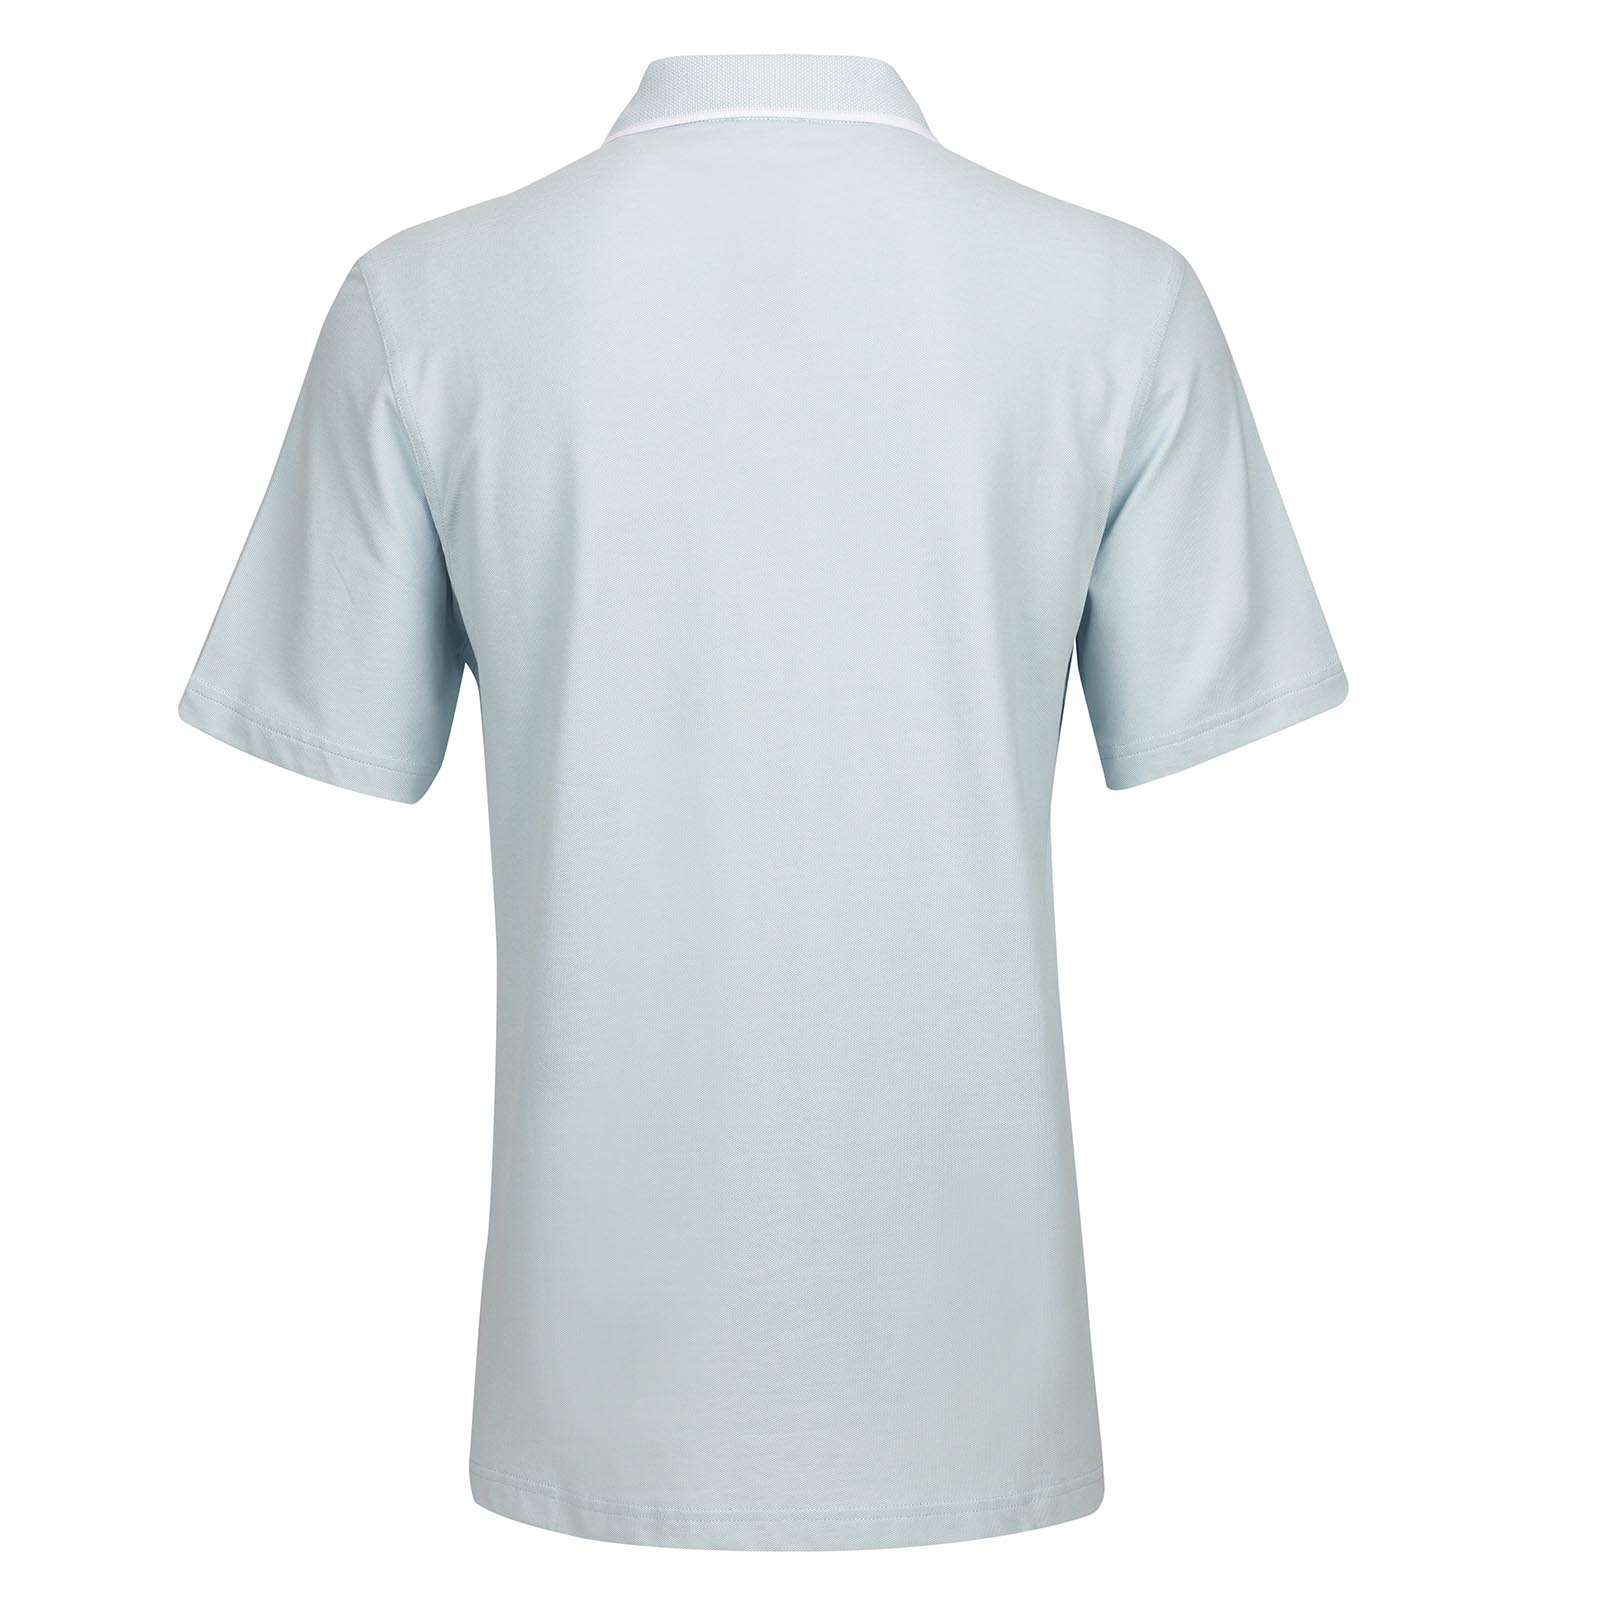 Herren Basic Kurzarm Golf-Piqué mit Sunprotection und Stretchfunktion